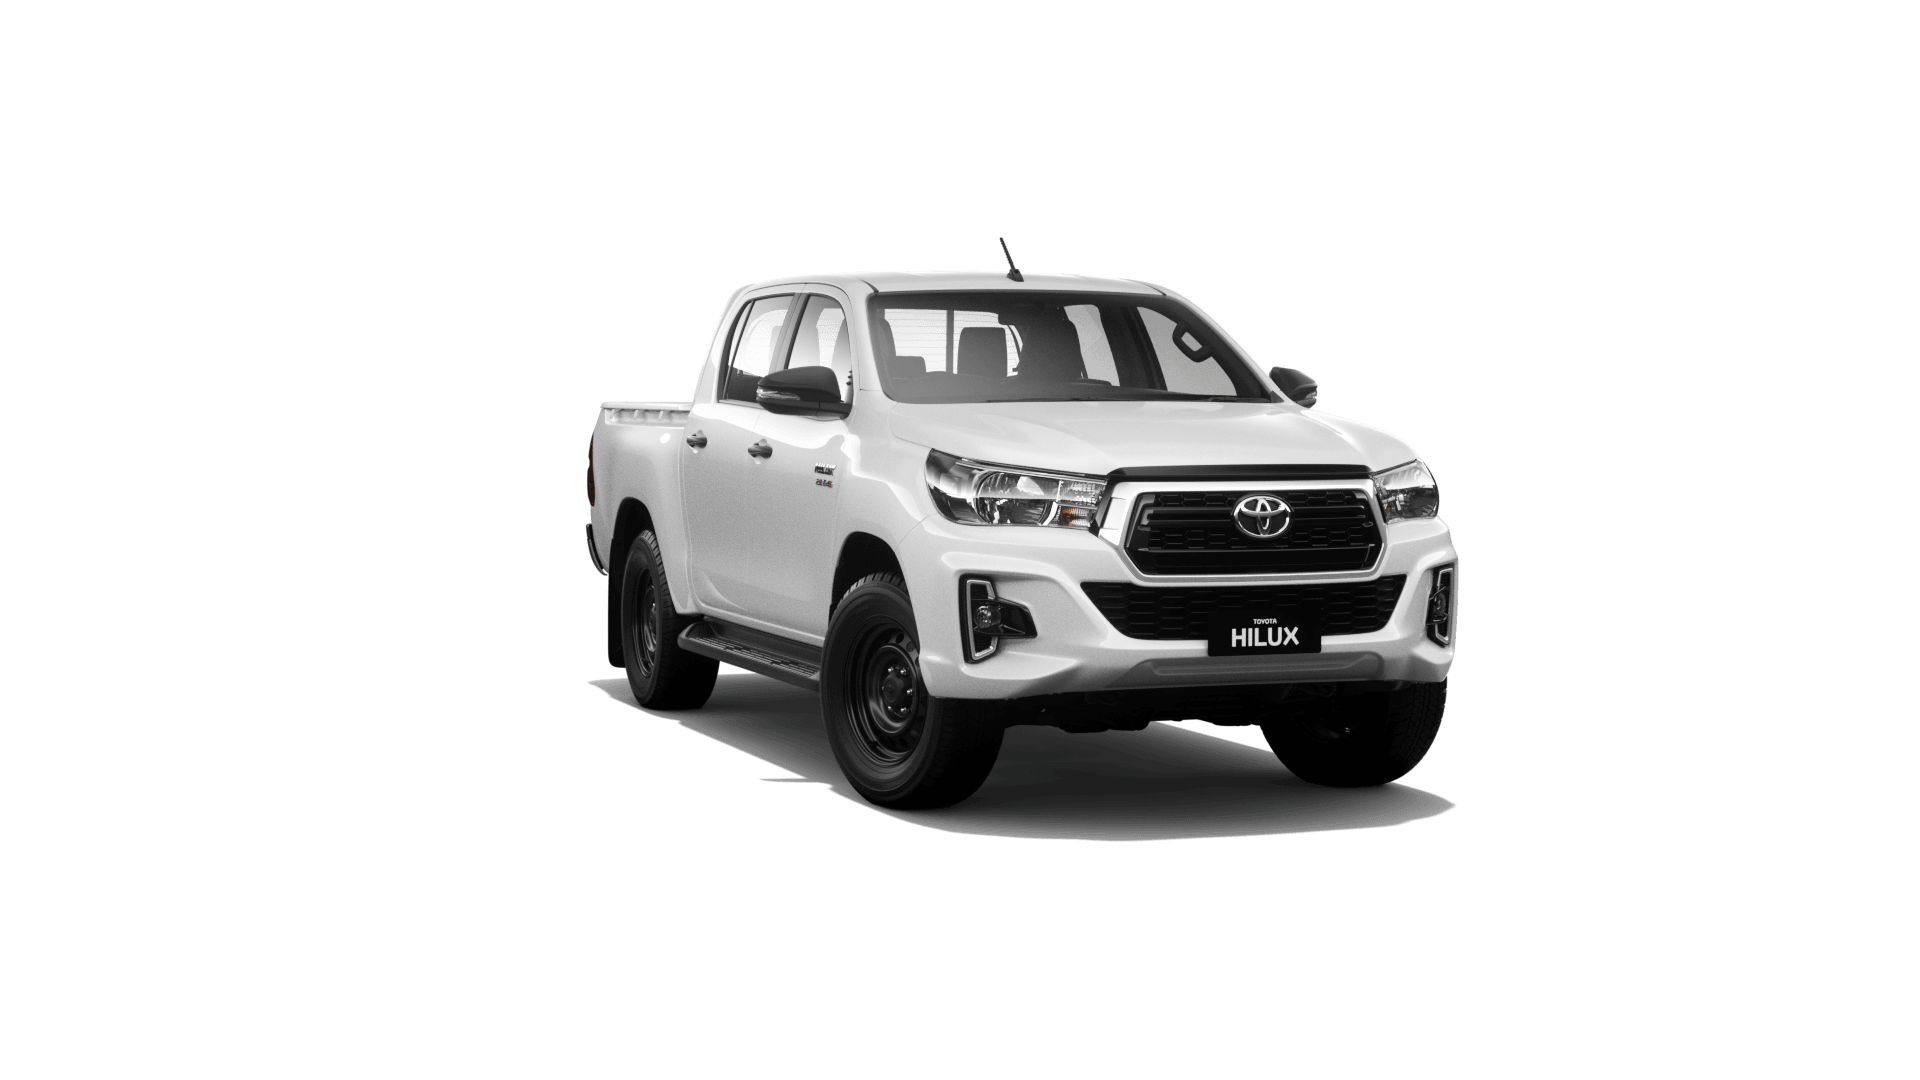 HiLux 4x4 SR <span>Double-Cab Pick-Up | Turbo-Diesel | Auto</span>